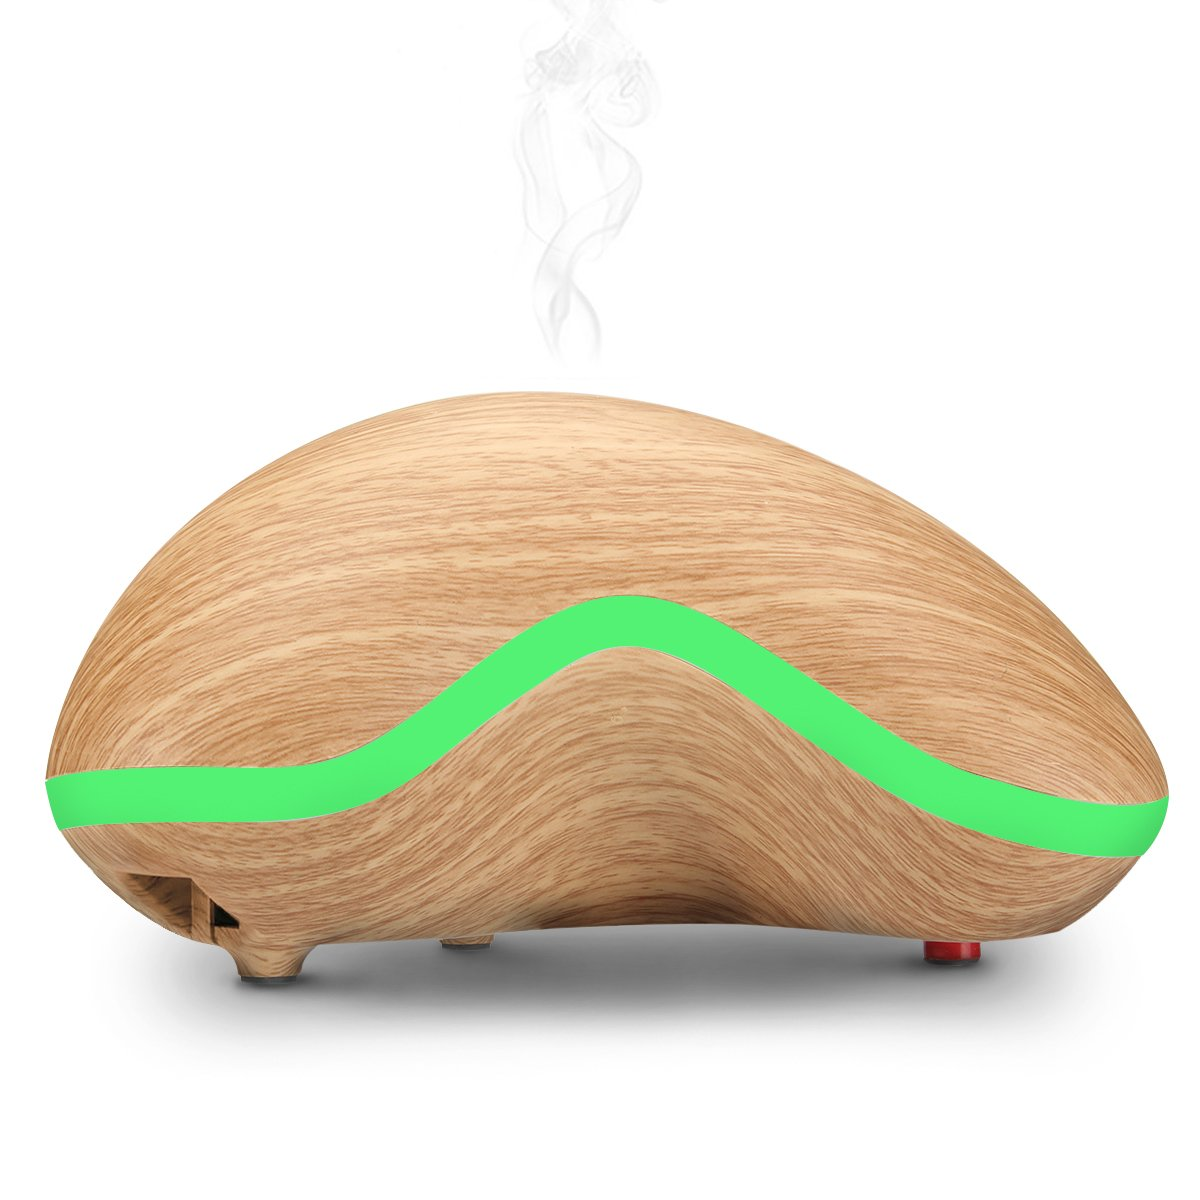 Essential Oil Diffuser,SGODDE 150ml Ultrasonic Aroma Humidifier with 7 Color LED Light for Office Home Bedroom Living Room Study Yoga Spa, Ultra-Silent,Wood Grain,Cashew Shape